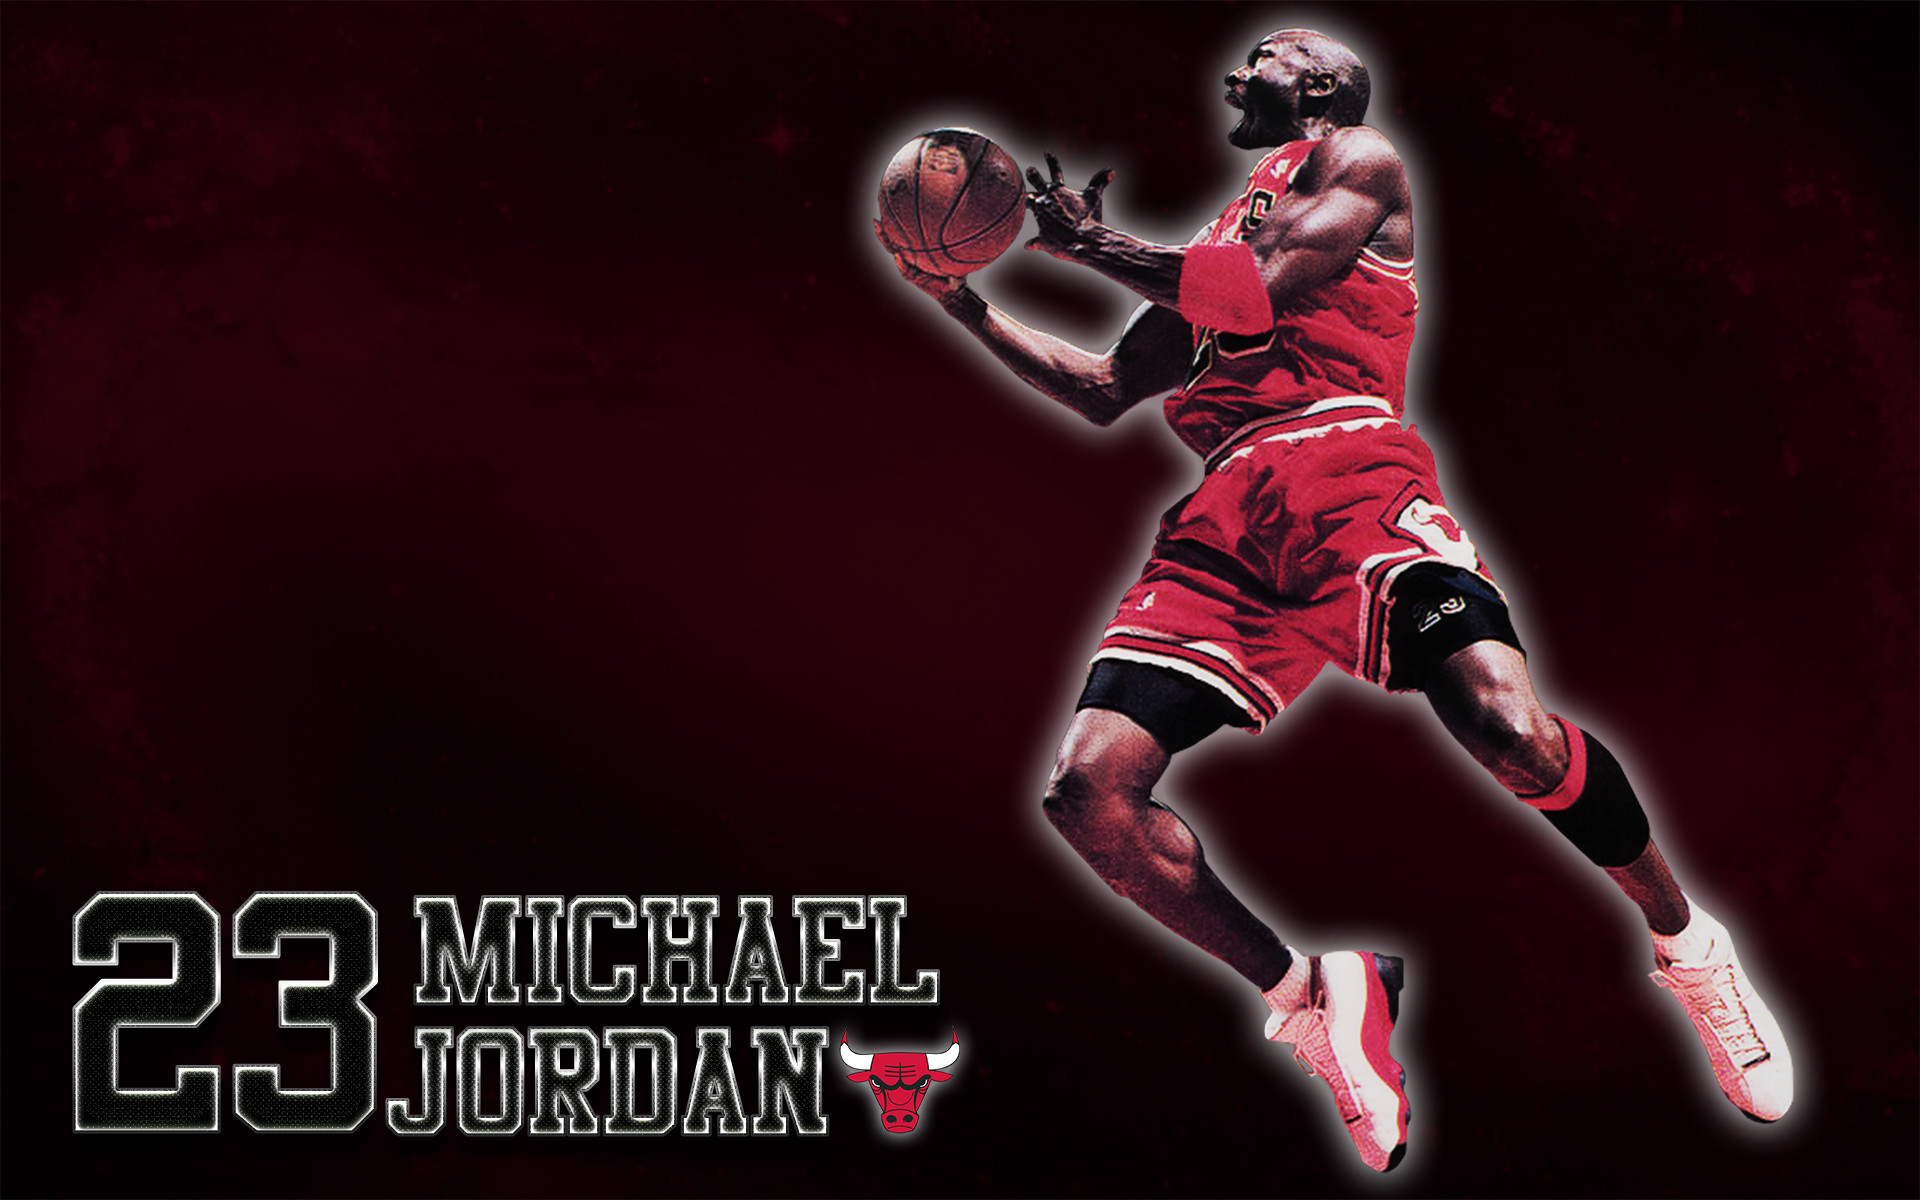 Chicago Bulls Wallpaper by WildSketchbook on DeviantArt   Chicago Bulls    Pinterest   Bulls wallpaper, Chicago bulls and Chicago